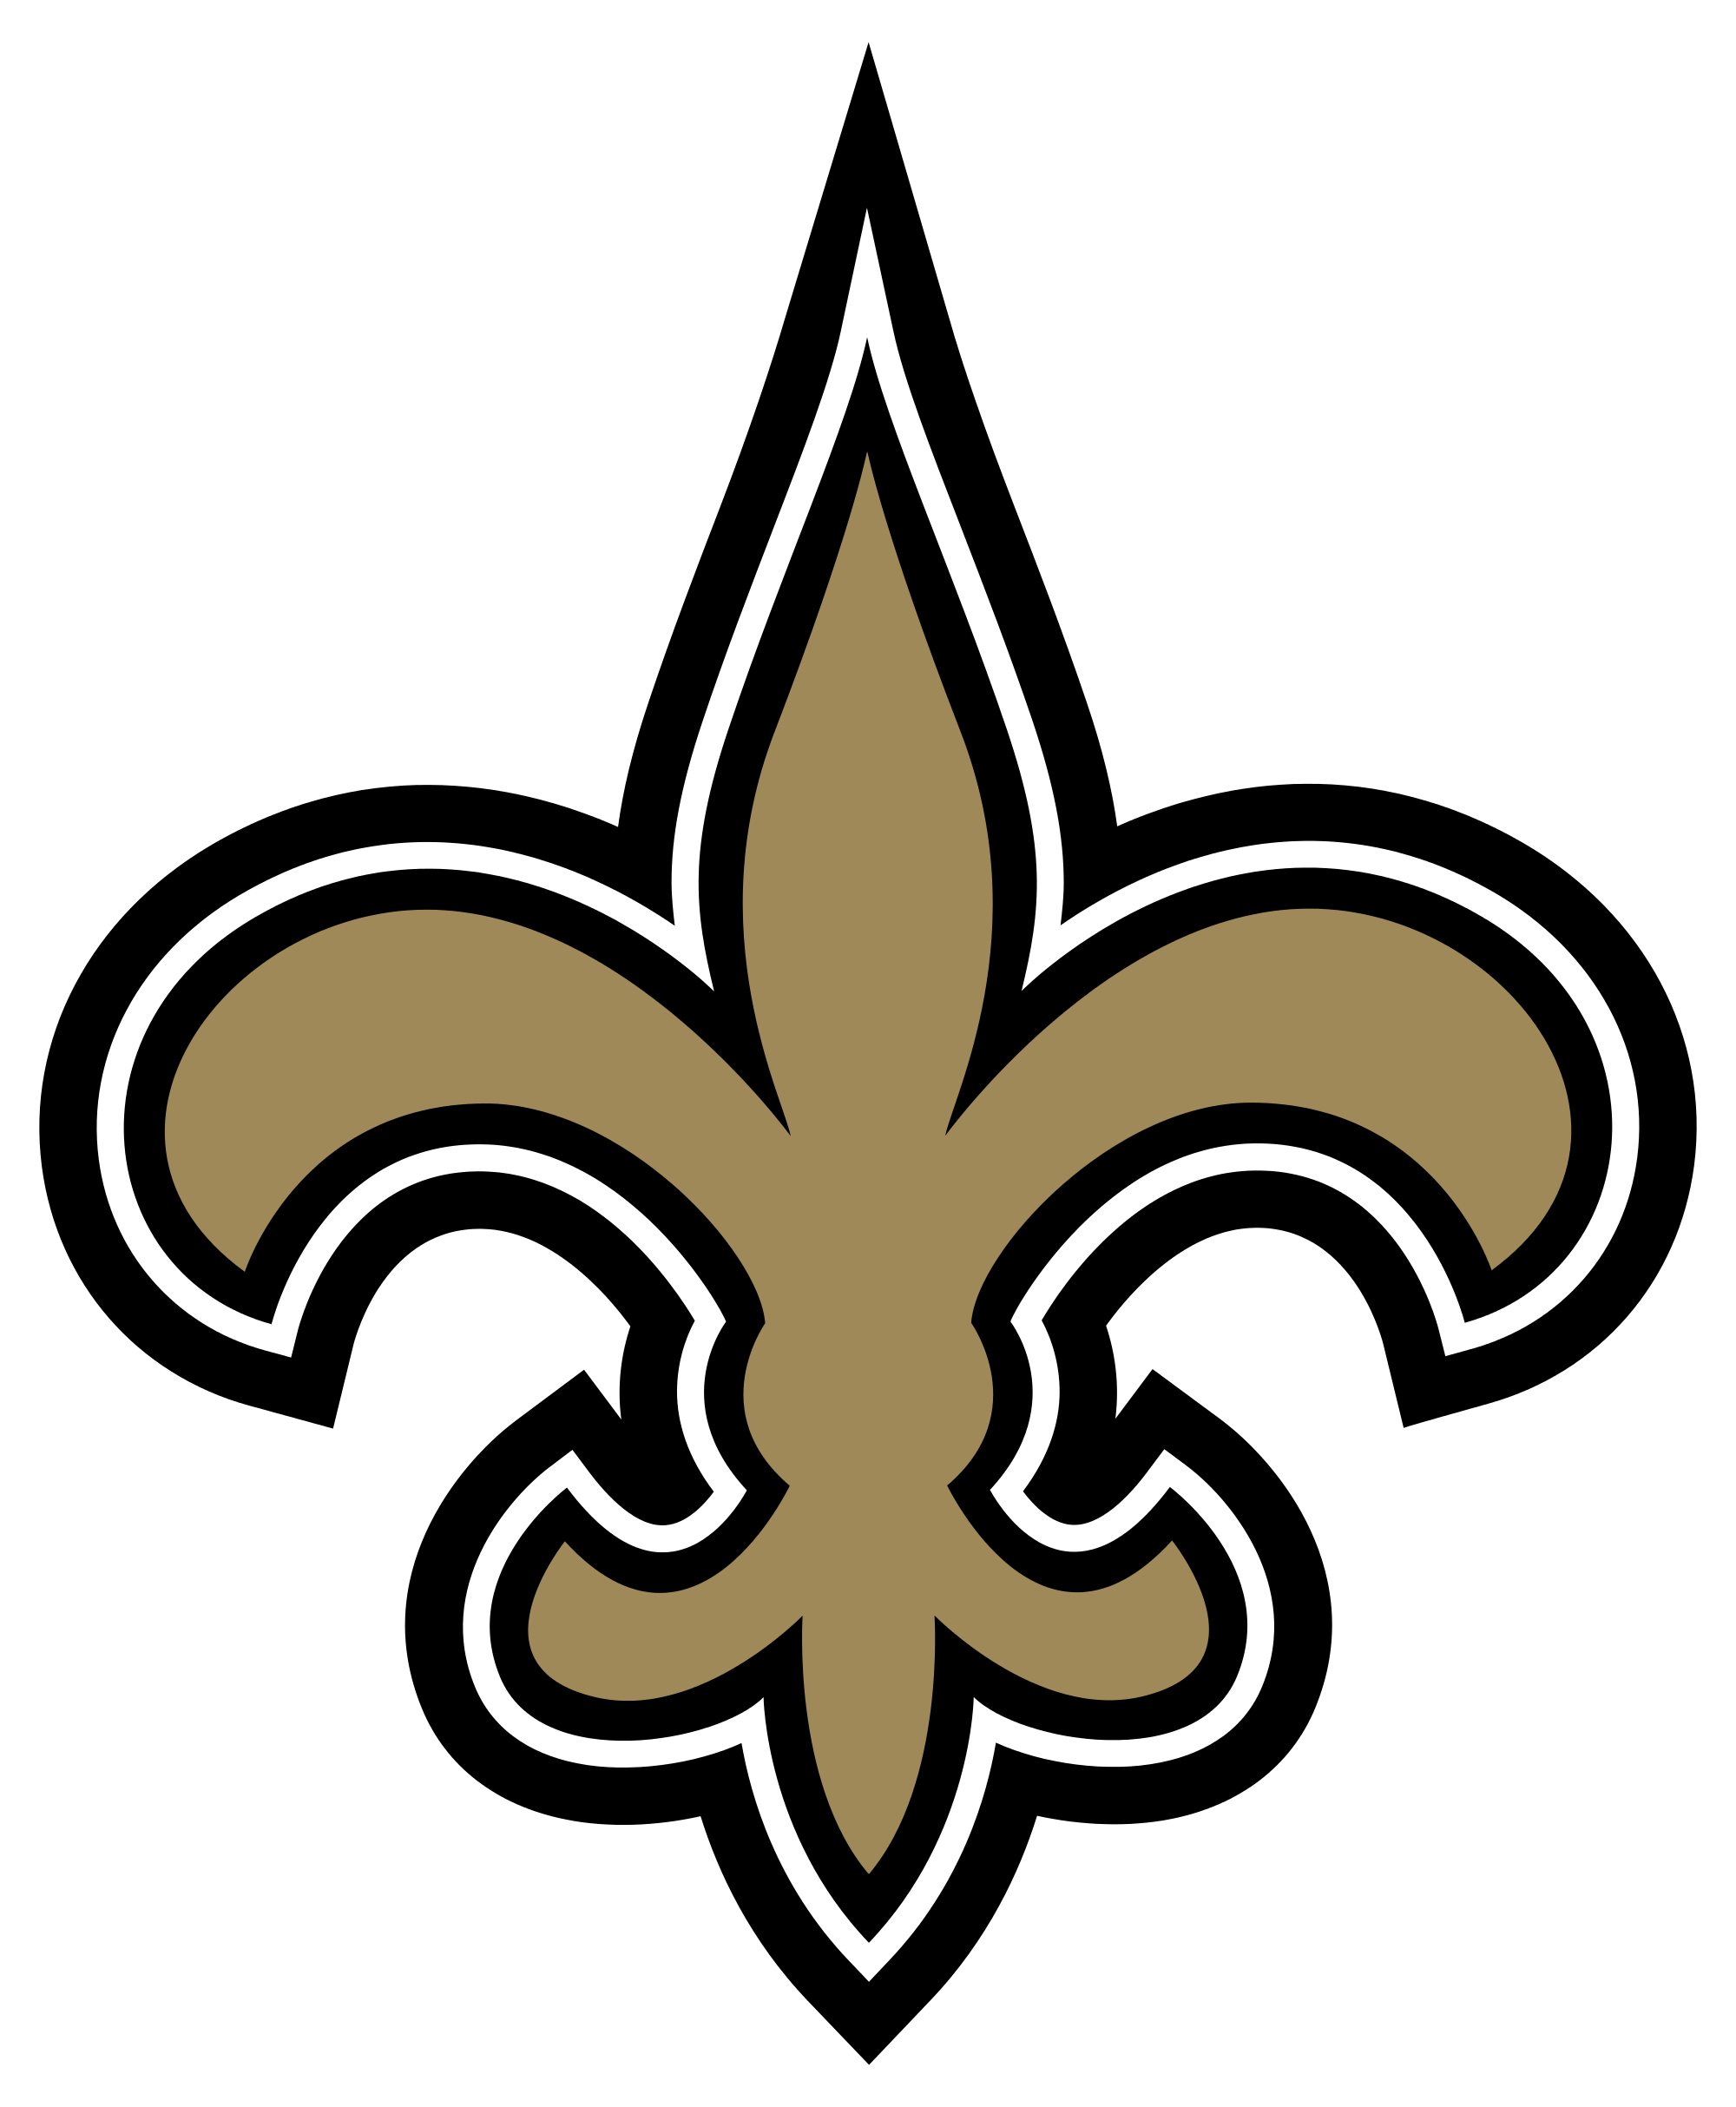 New orleans saints football clipart picture royalty free library File:New Orleans Saints.svg - Wikimedia Commons | Cricut magic ... picture royalty free library